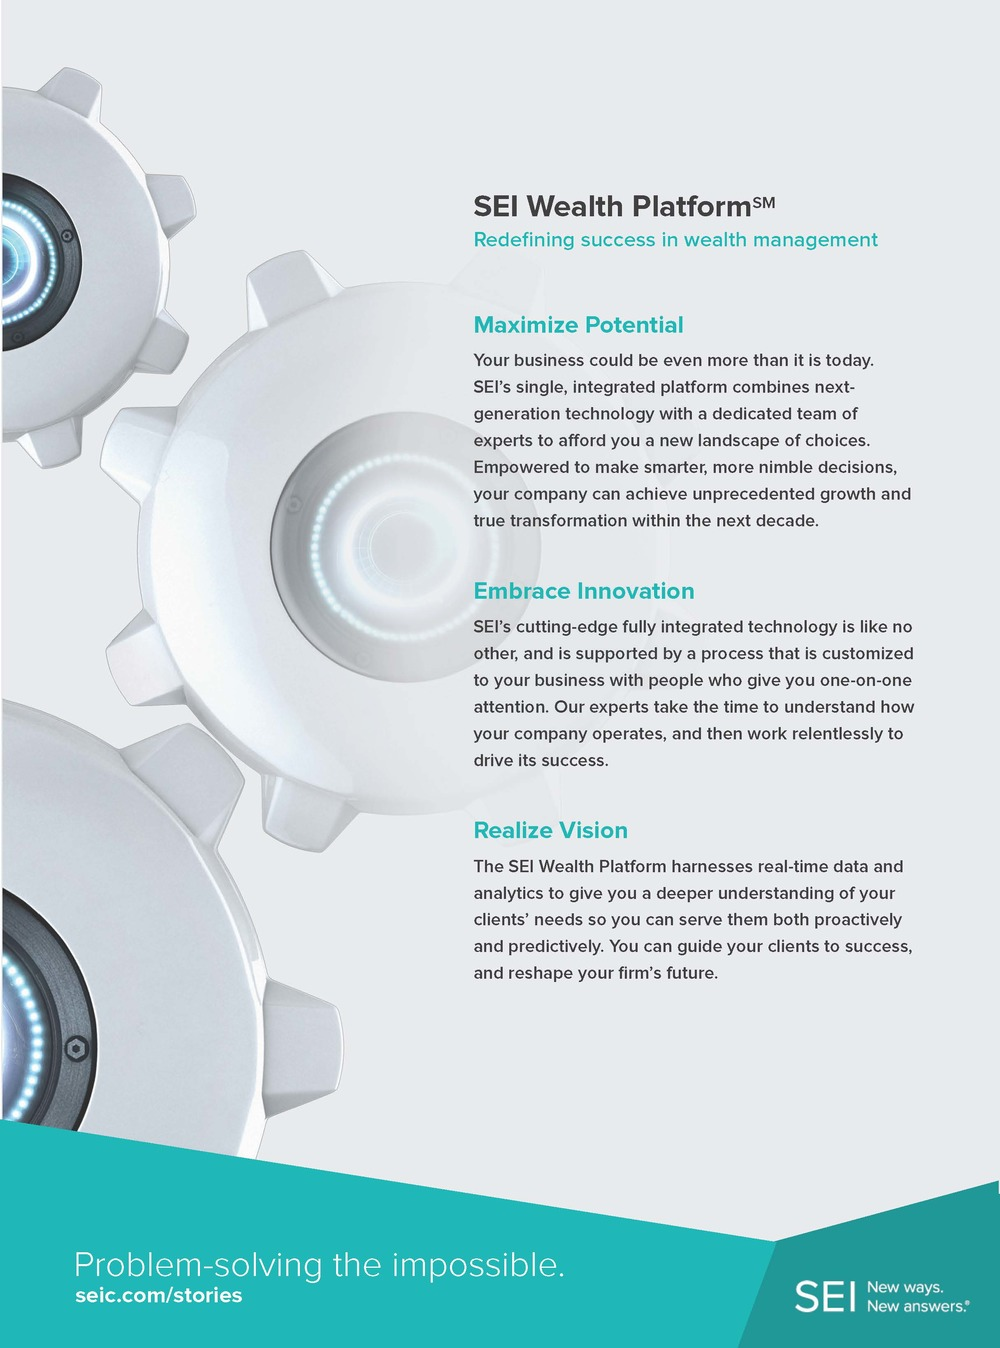 SEI-US Print Ad Mark-pages_Page_3.jpg